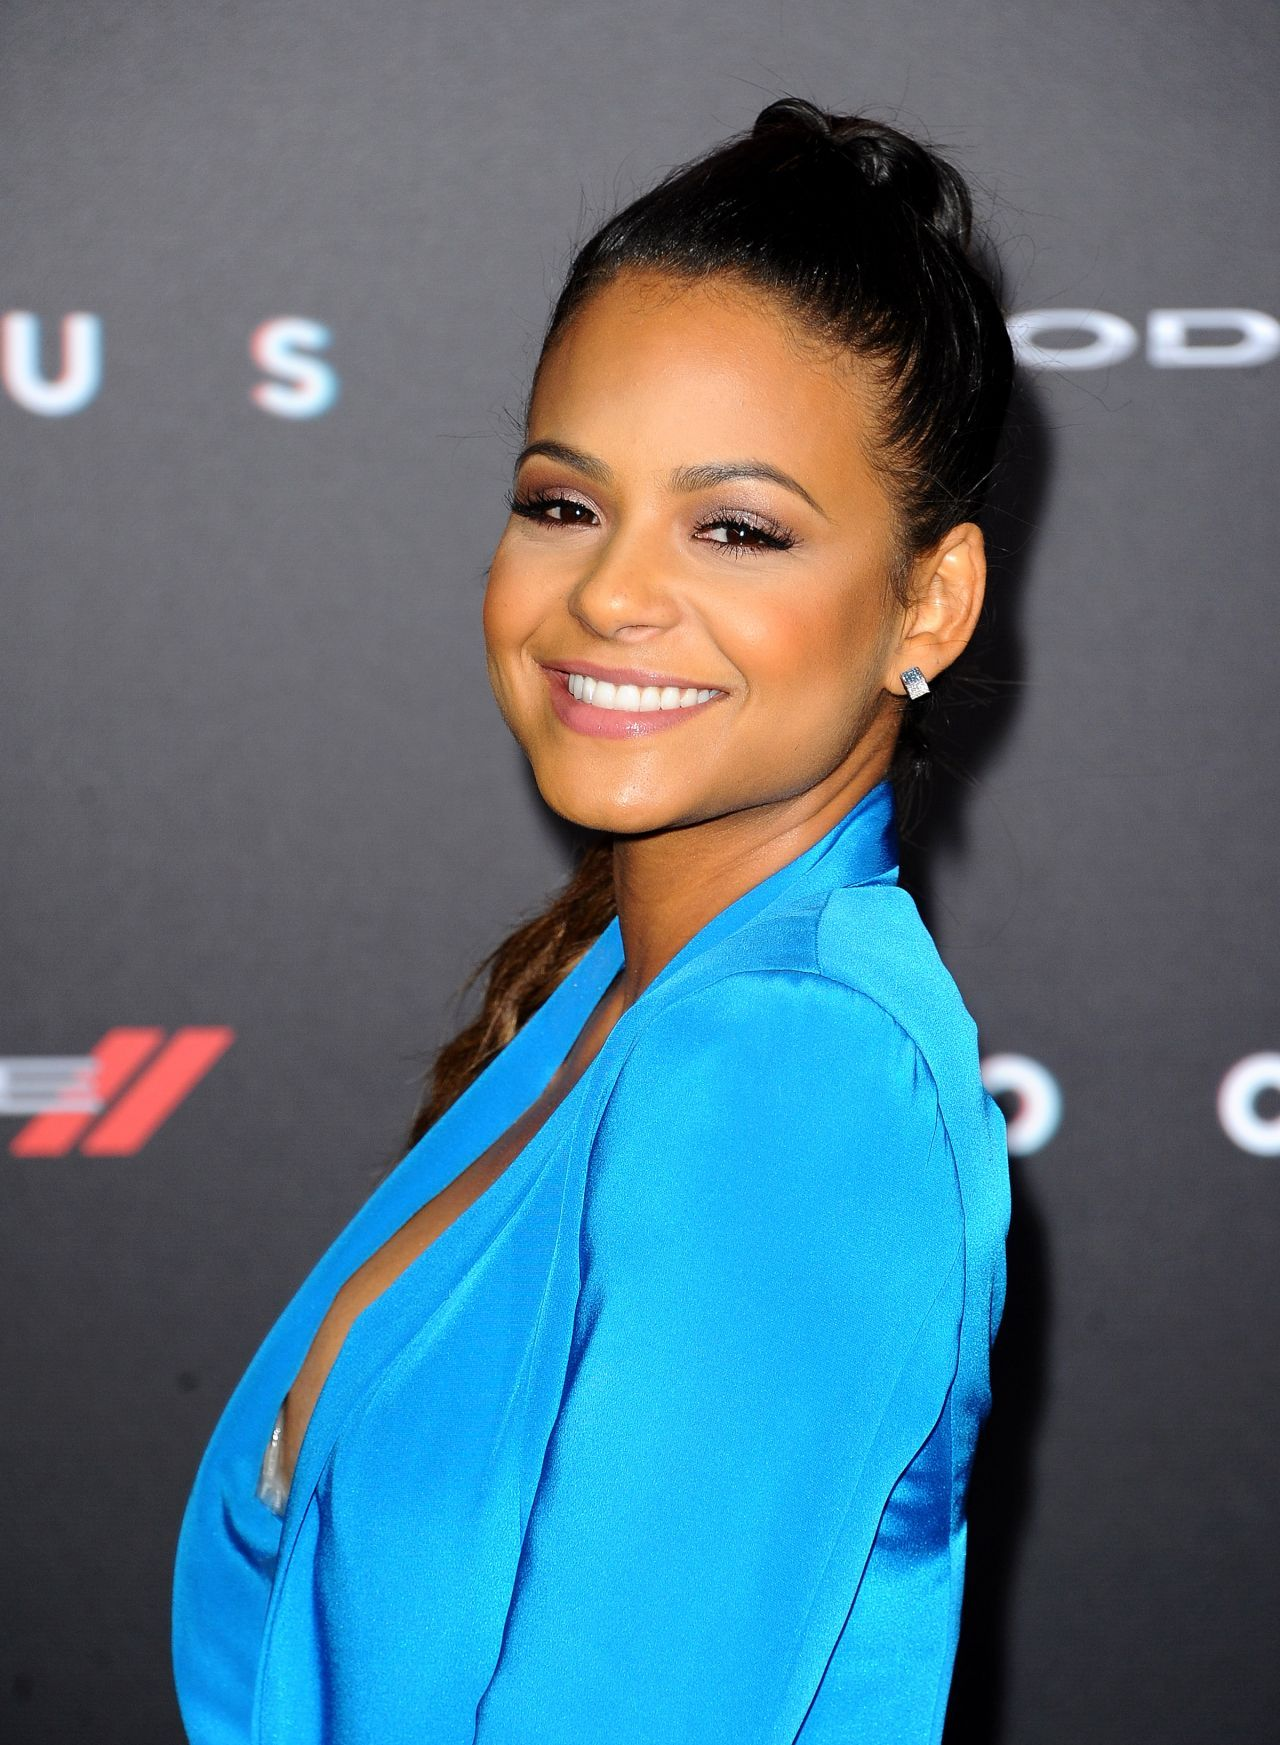 Christina Milian U2013 Focus Movie Premiere In Los Angeles